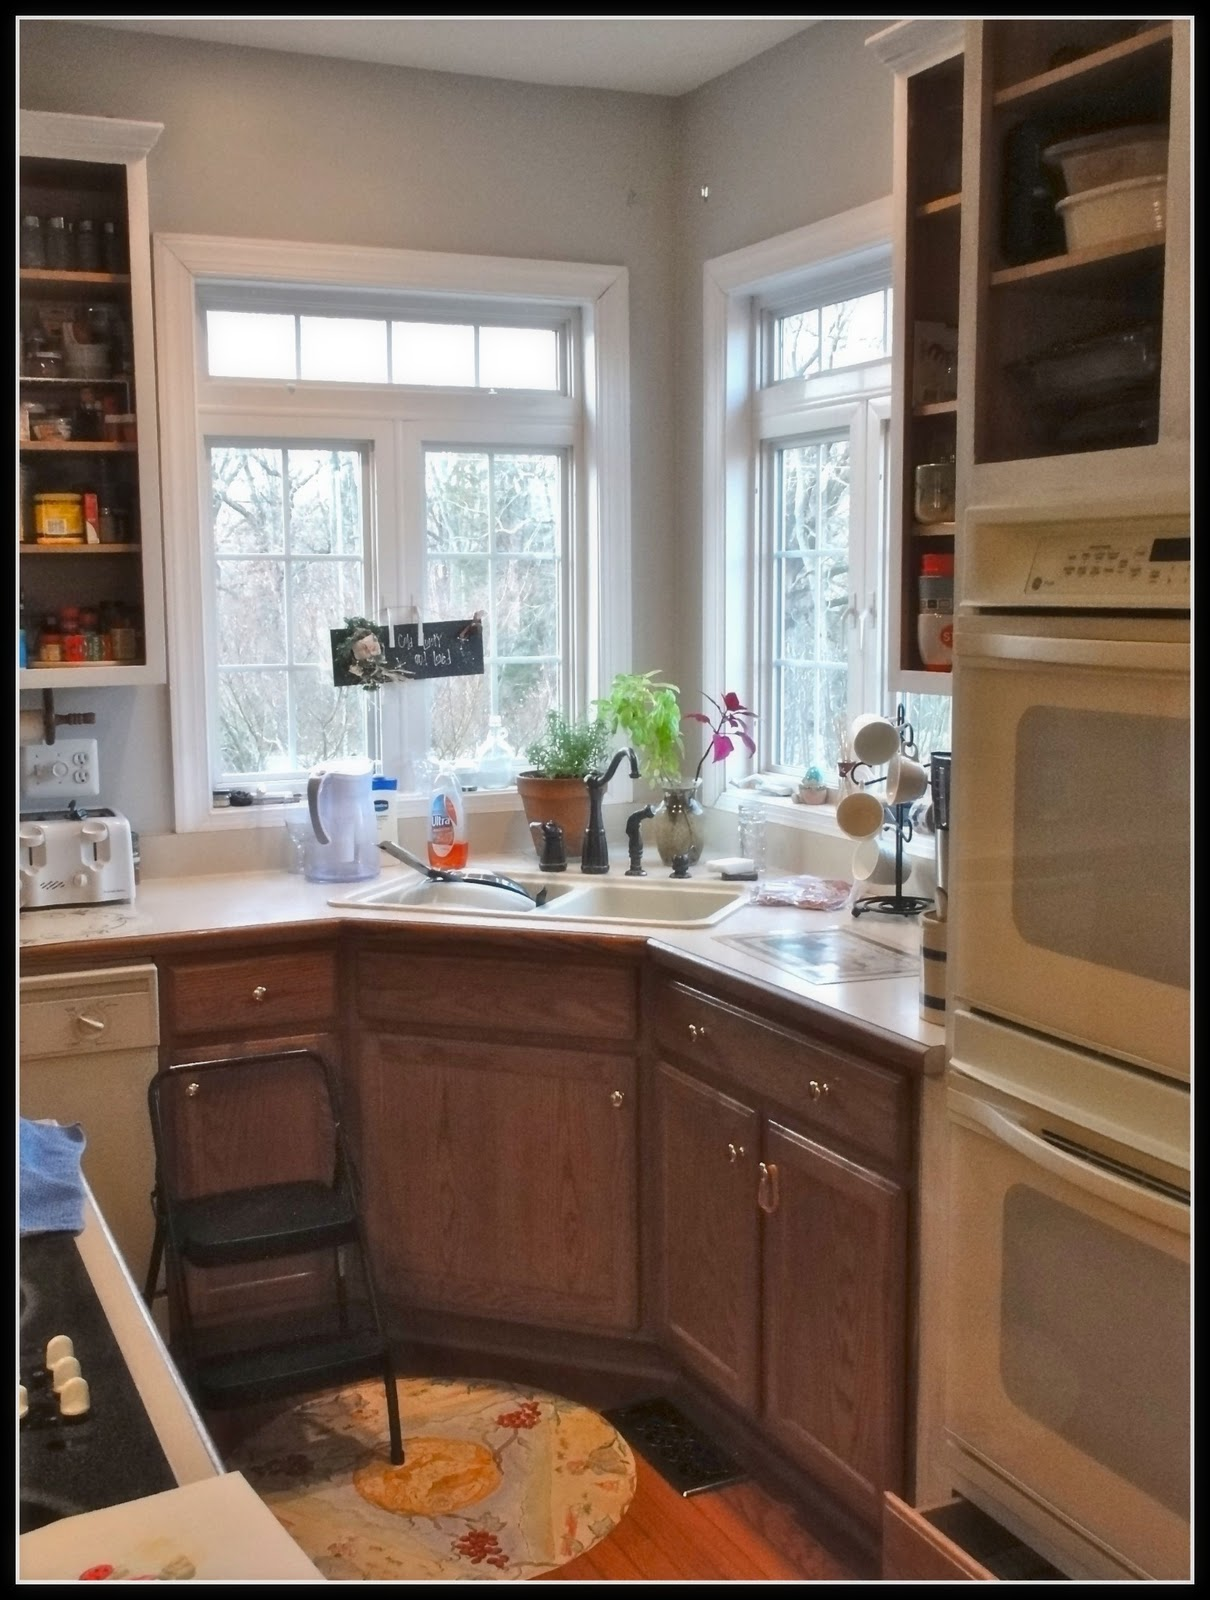 kitchen cabinets 6 bespoke oak kitchens ci behr paint white - Behr Paint Kitchen Cabinets